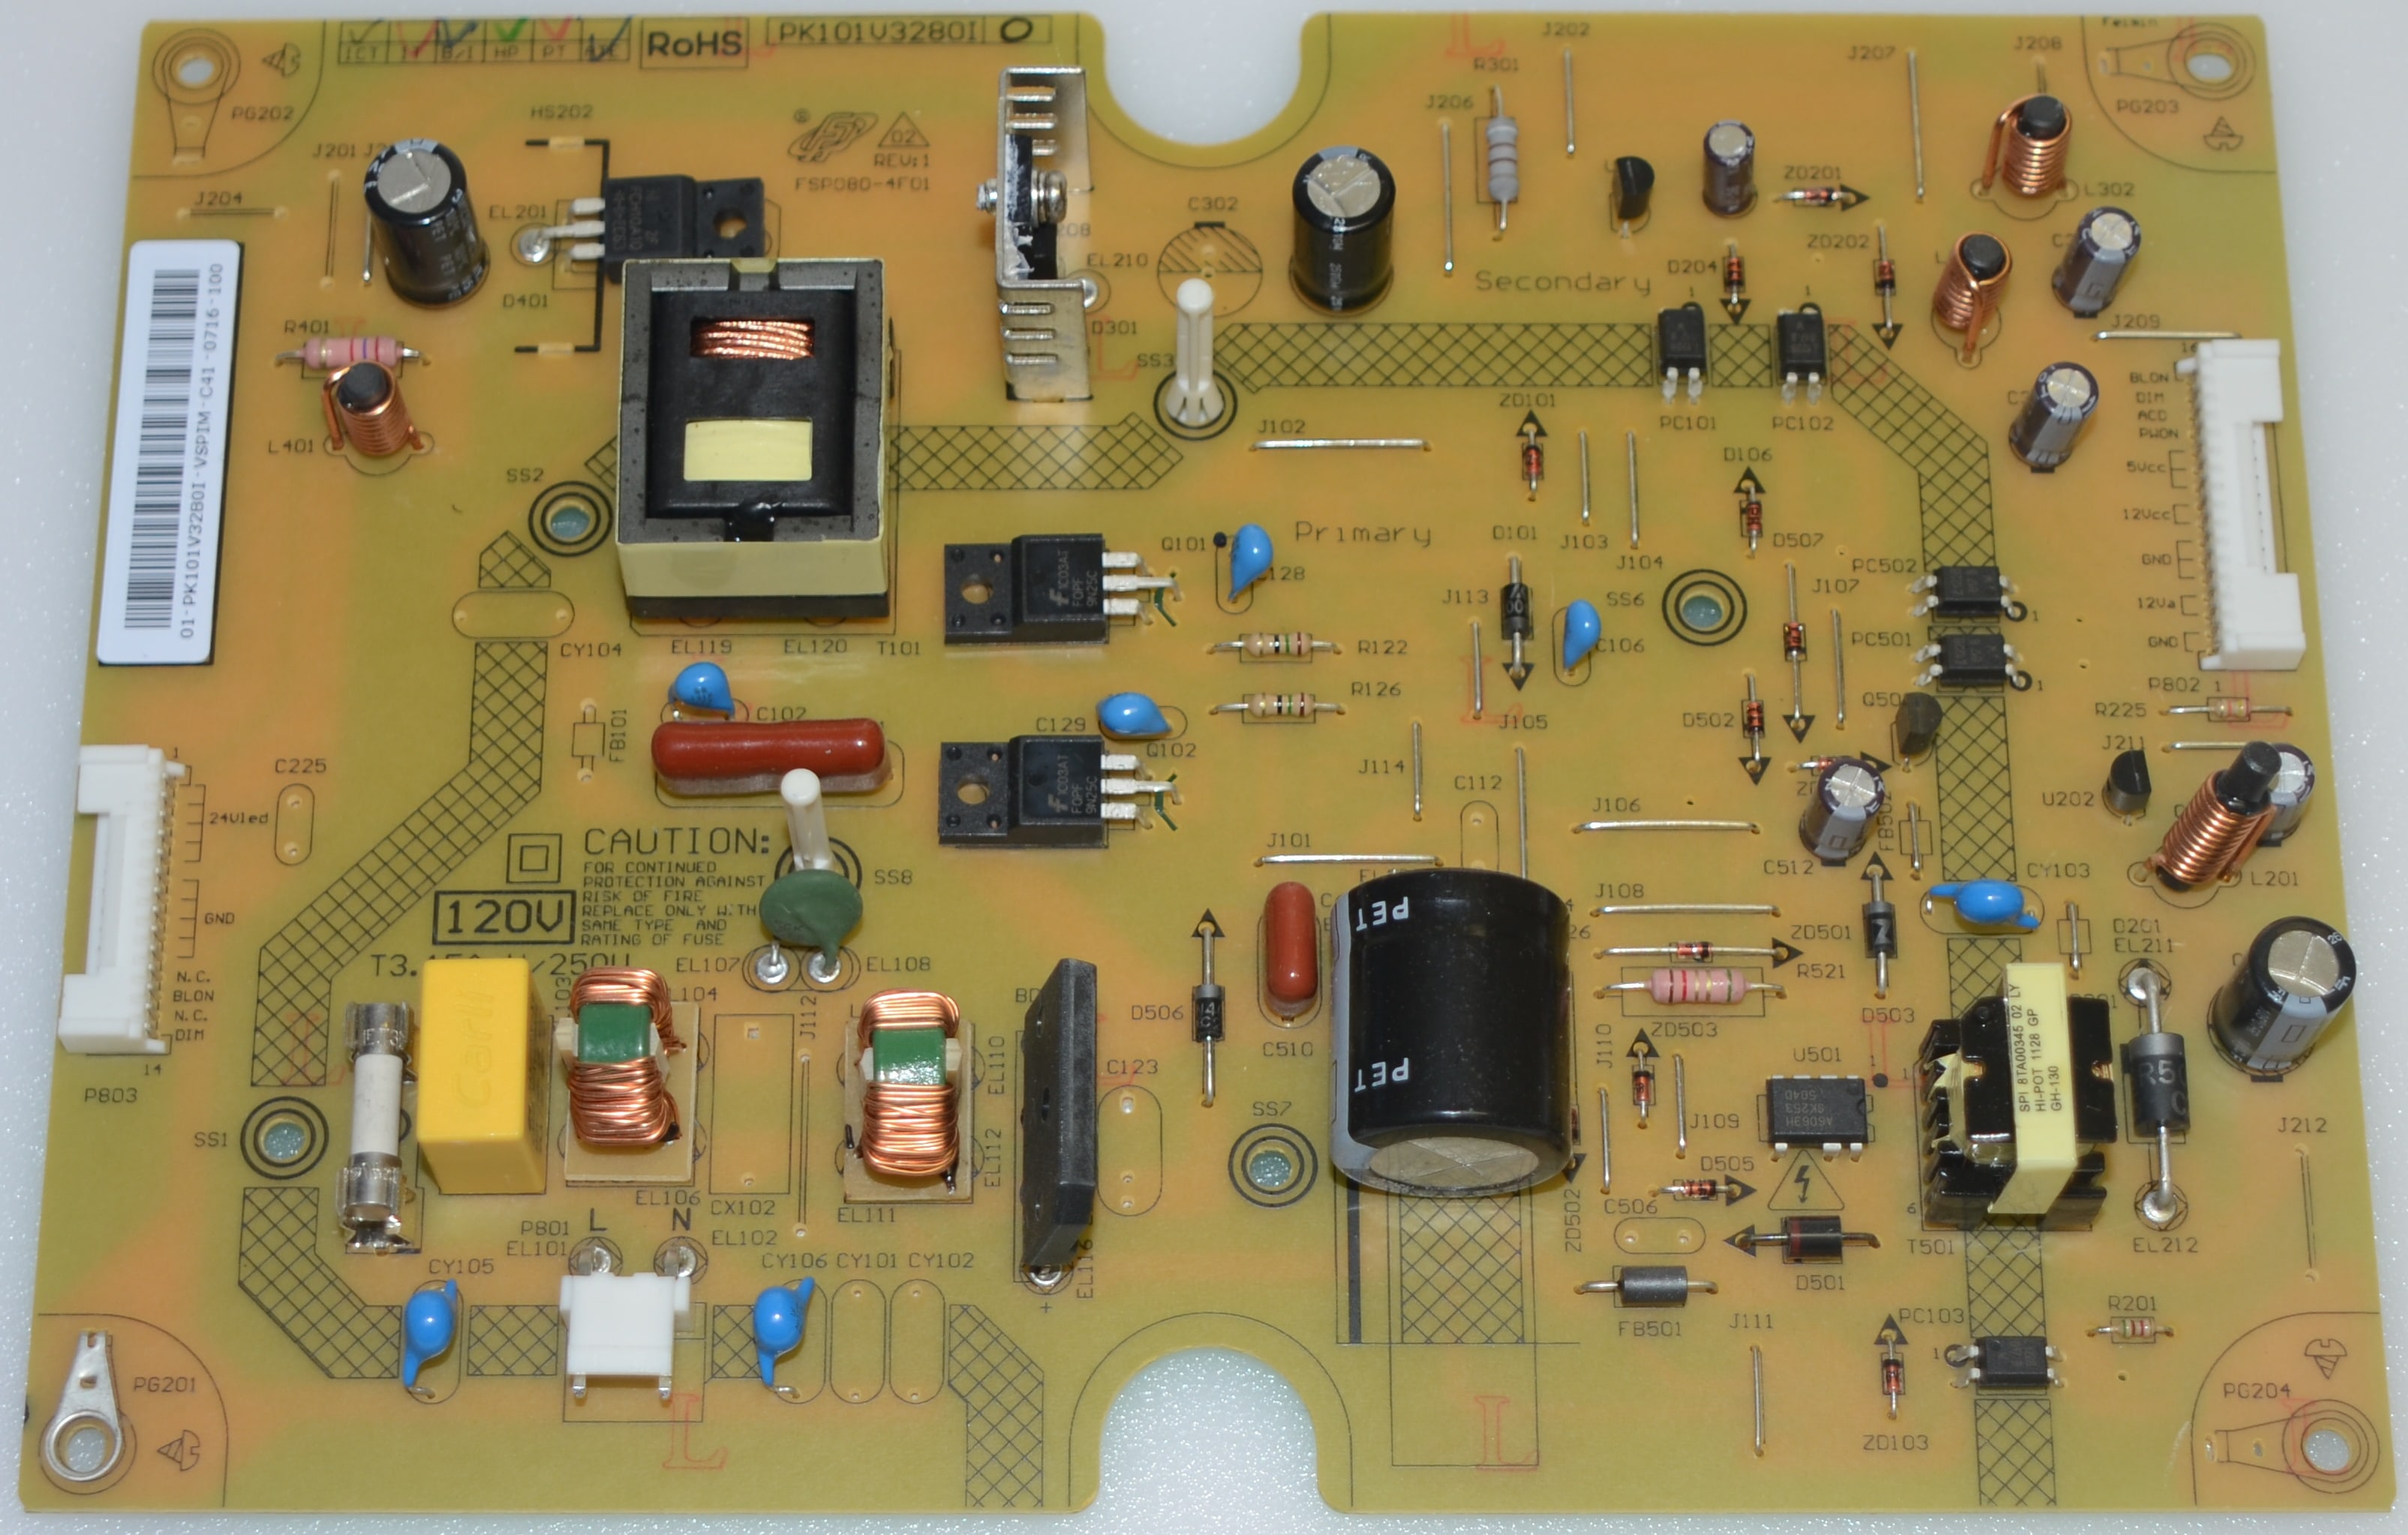 Toshiba 75031539 Pk101v3280i Power Supply Board Connector Wiring Diagram